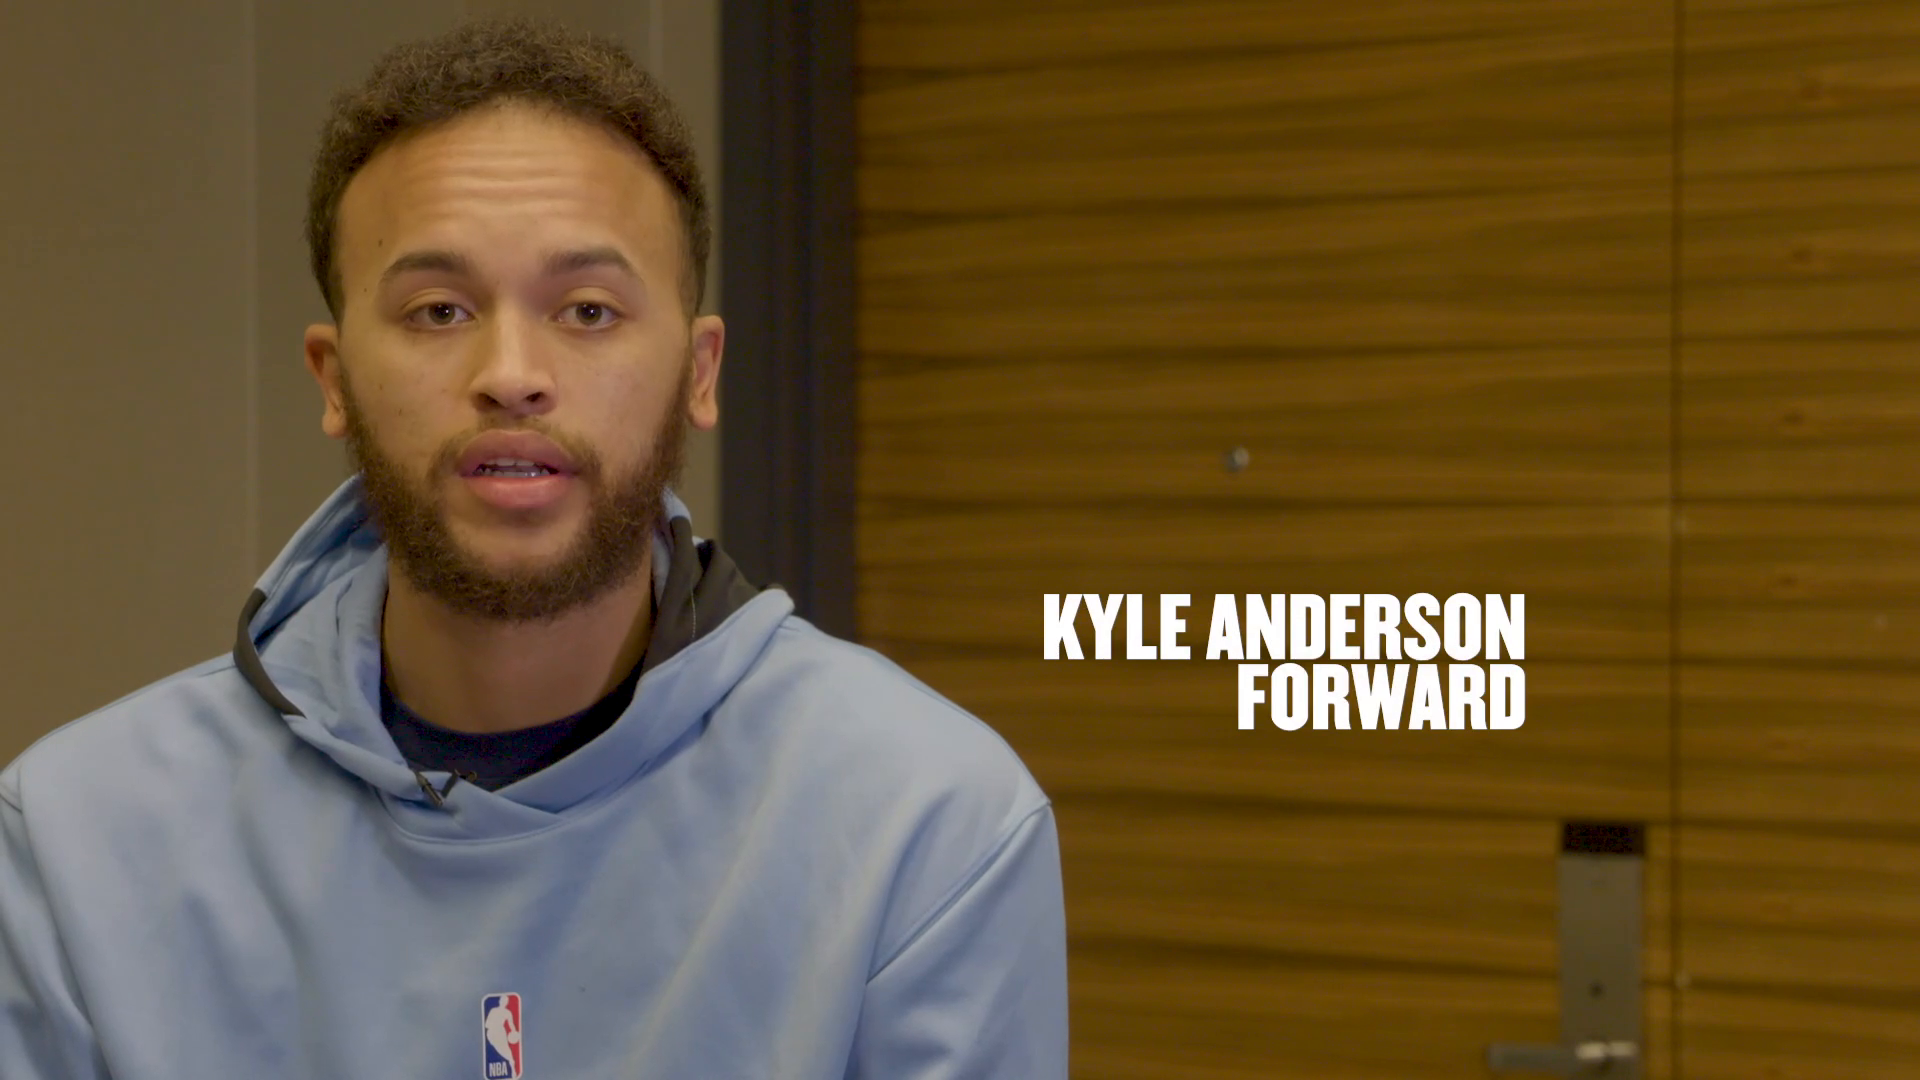 Kyle Anderson reflects on MLK's Legacy | Presented by Verizon